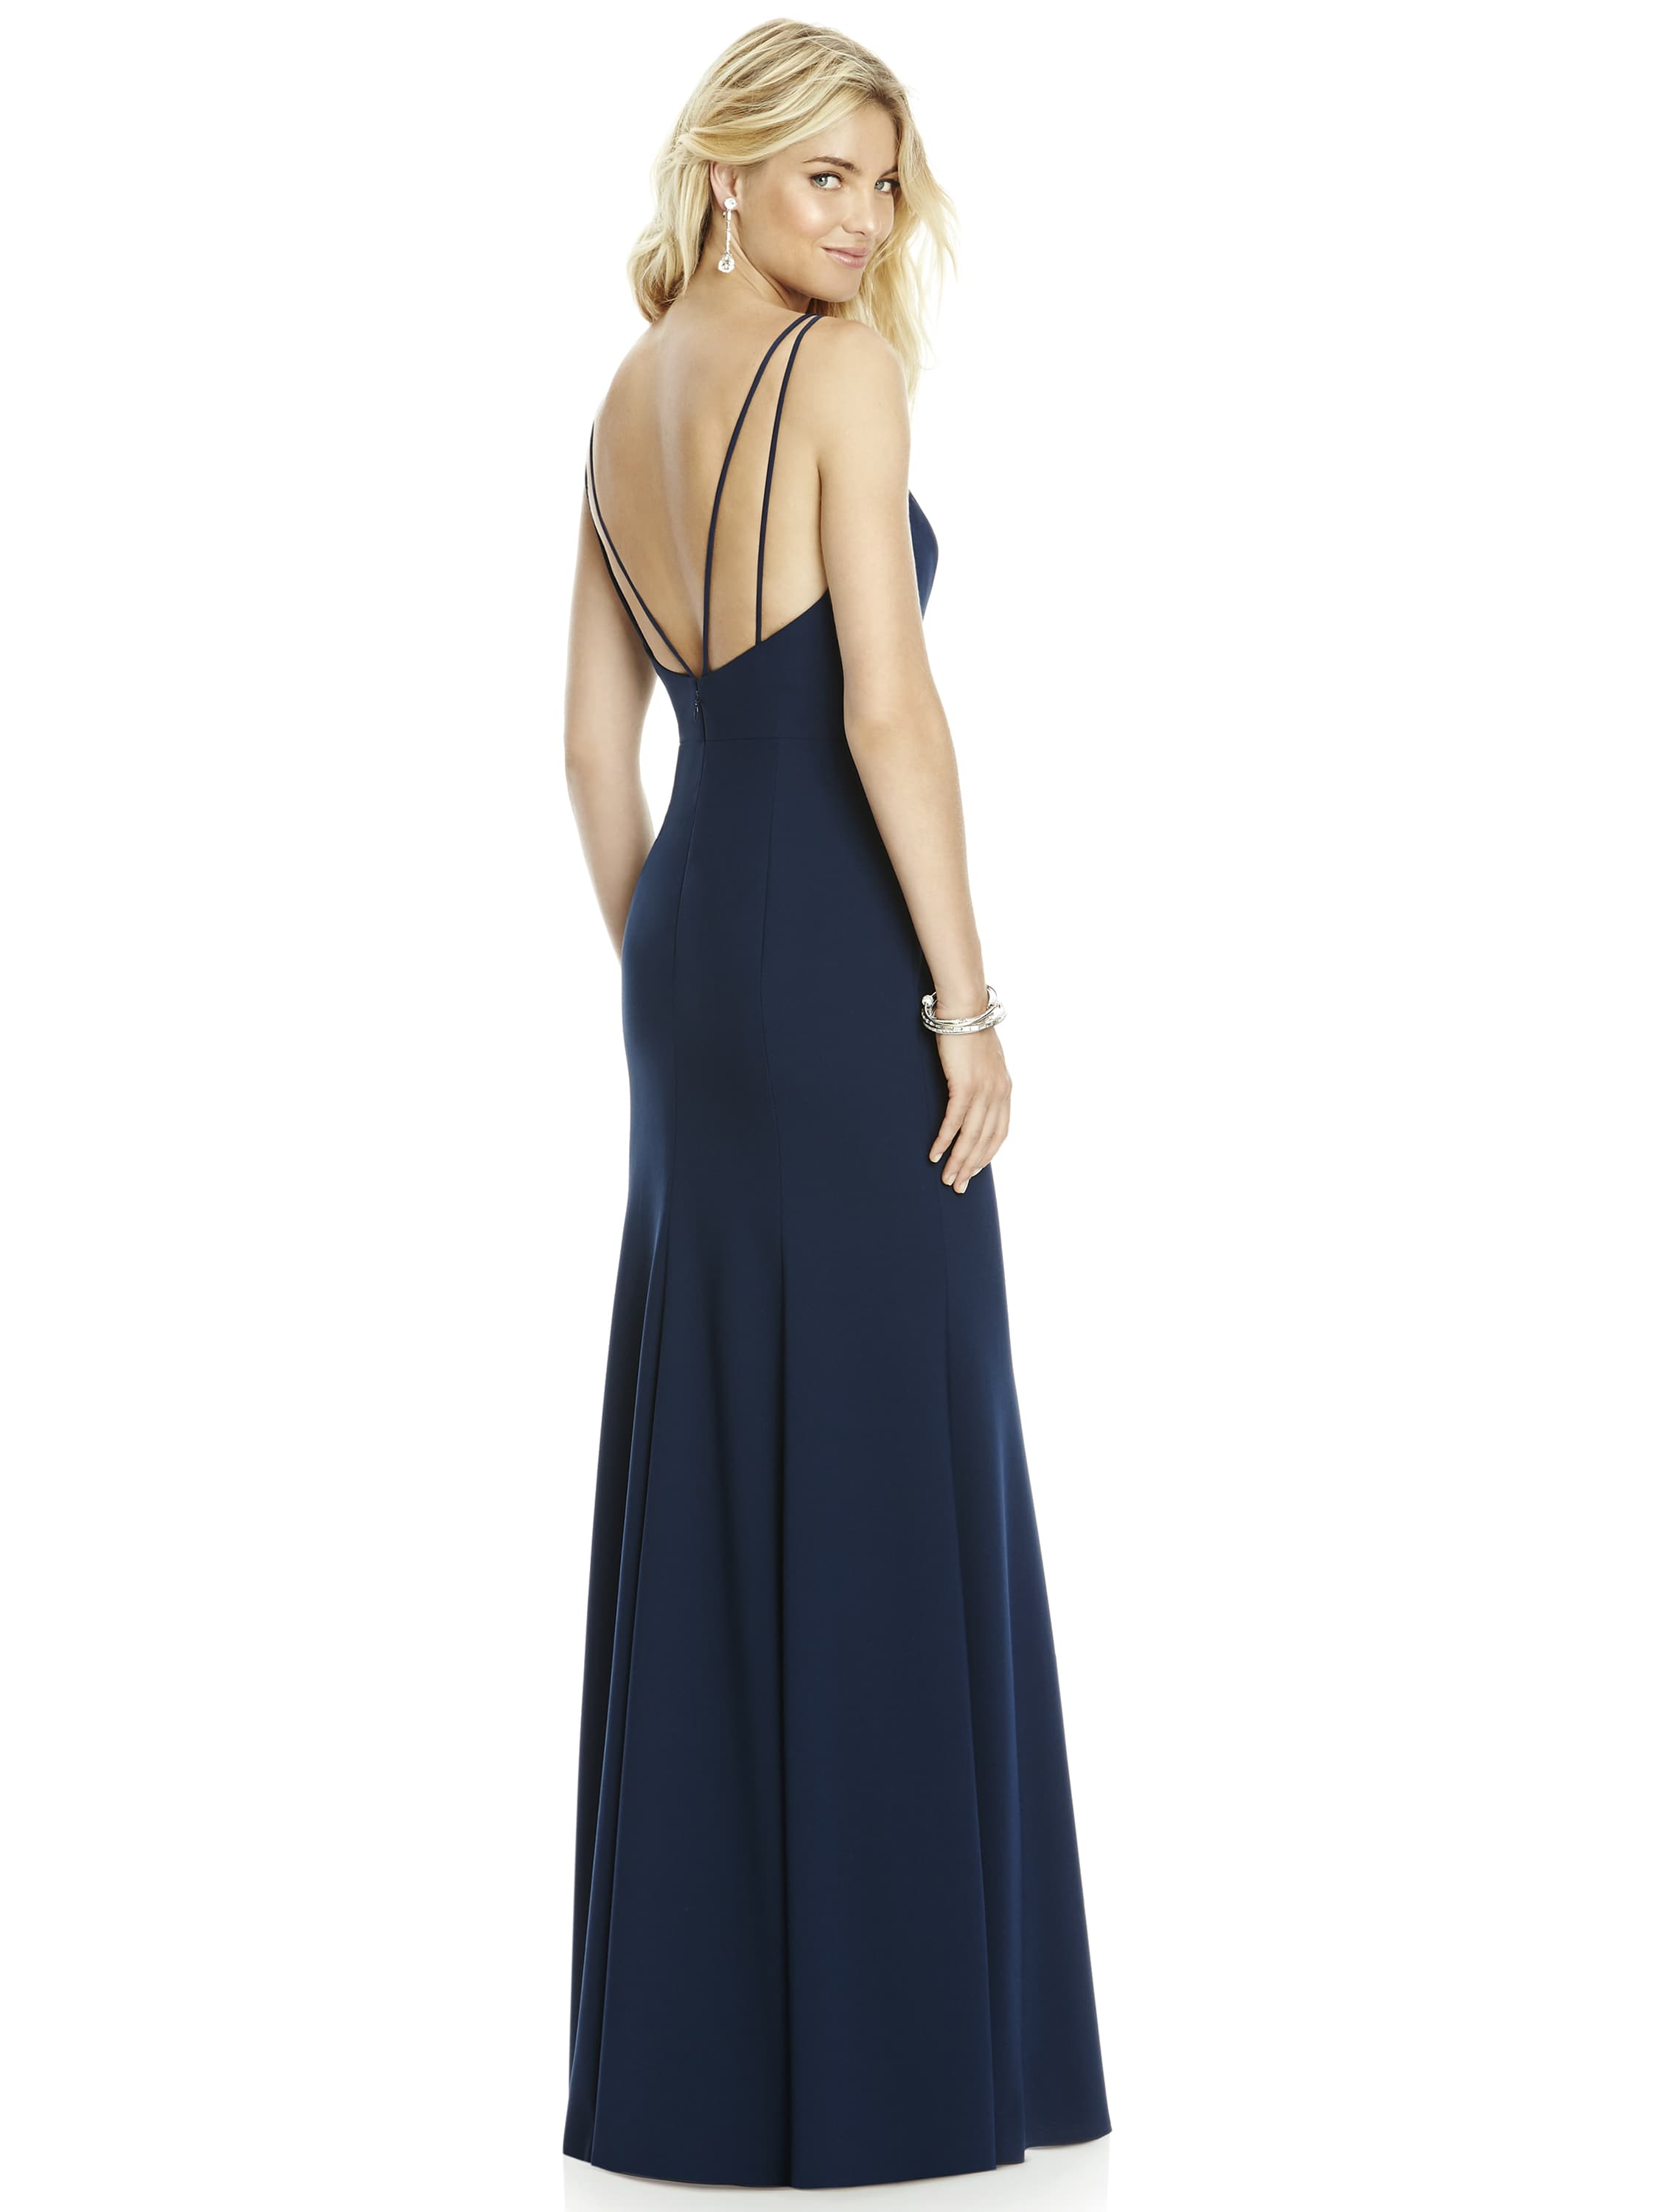 Style 6758 by Dessy Group in midnight navy crepe